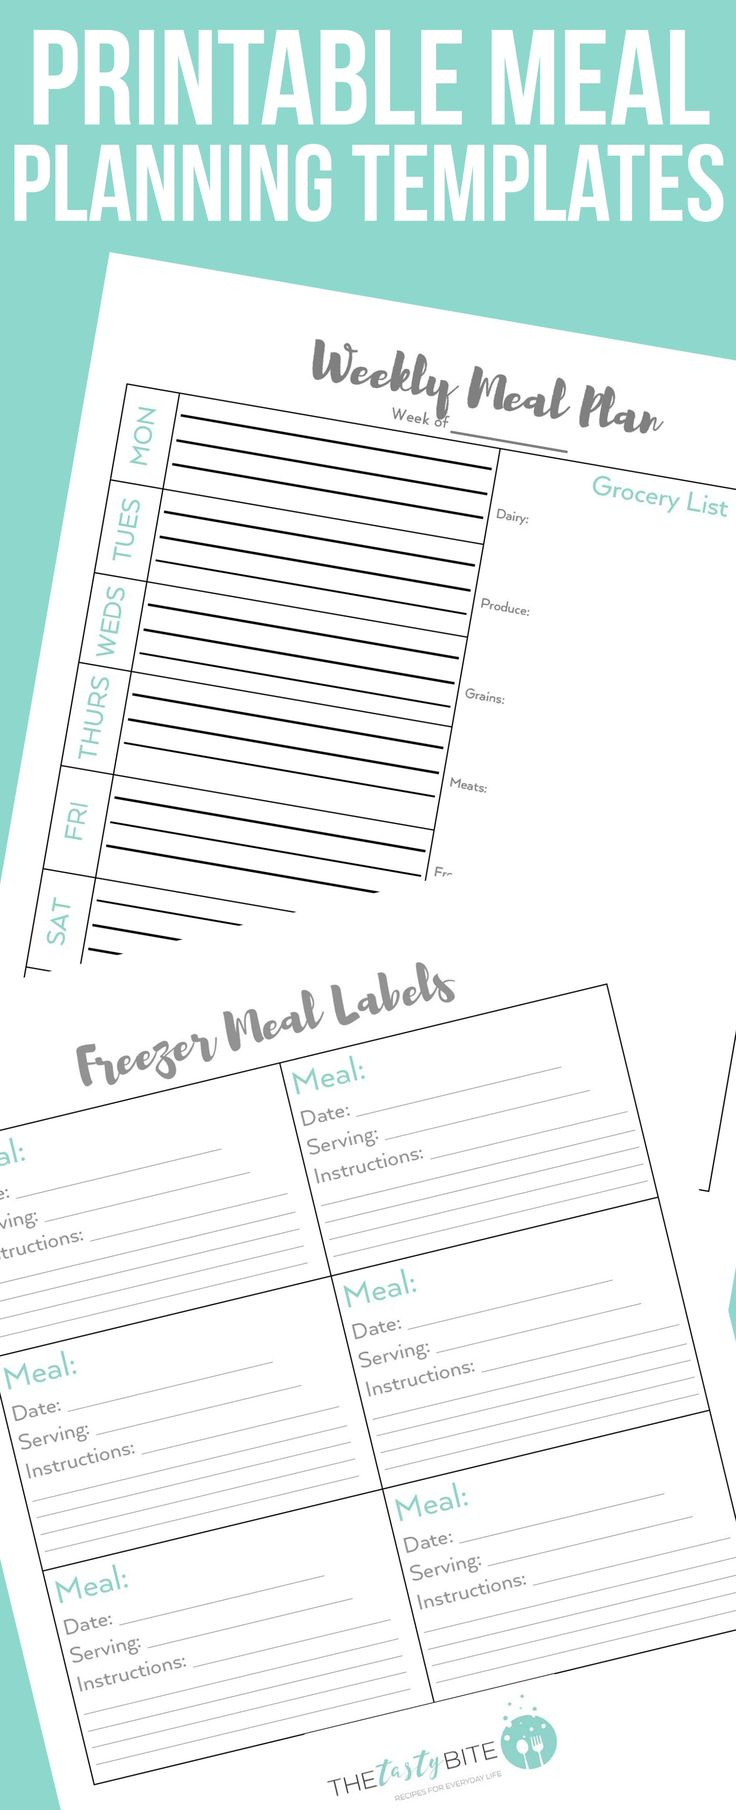 These printable weekly menu templates and freezer meal labels will help you stay organized when meal planning! #mealplanning #organization